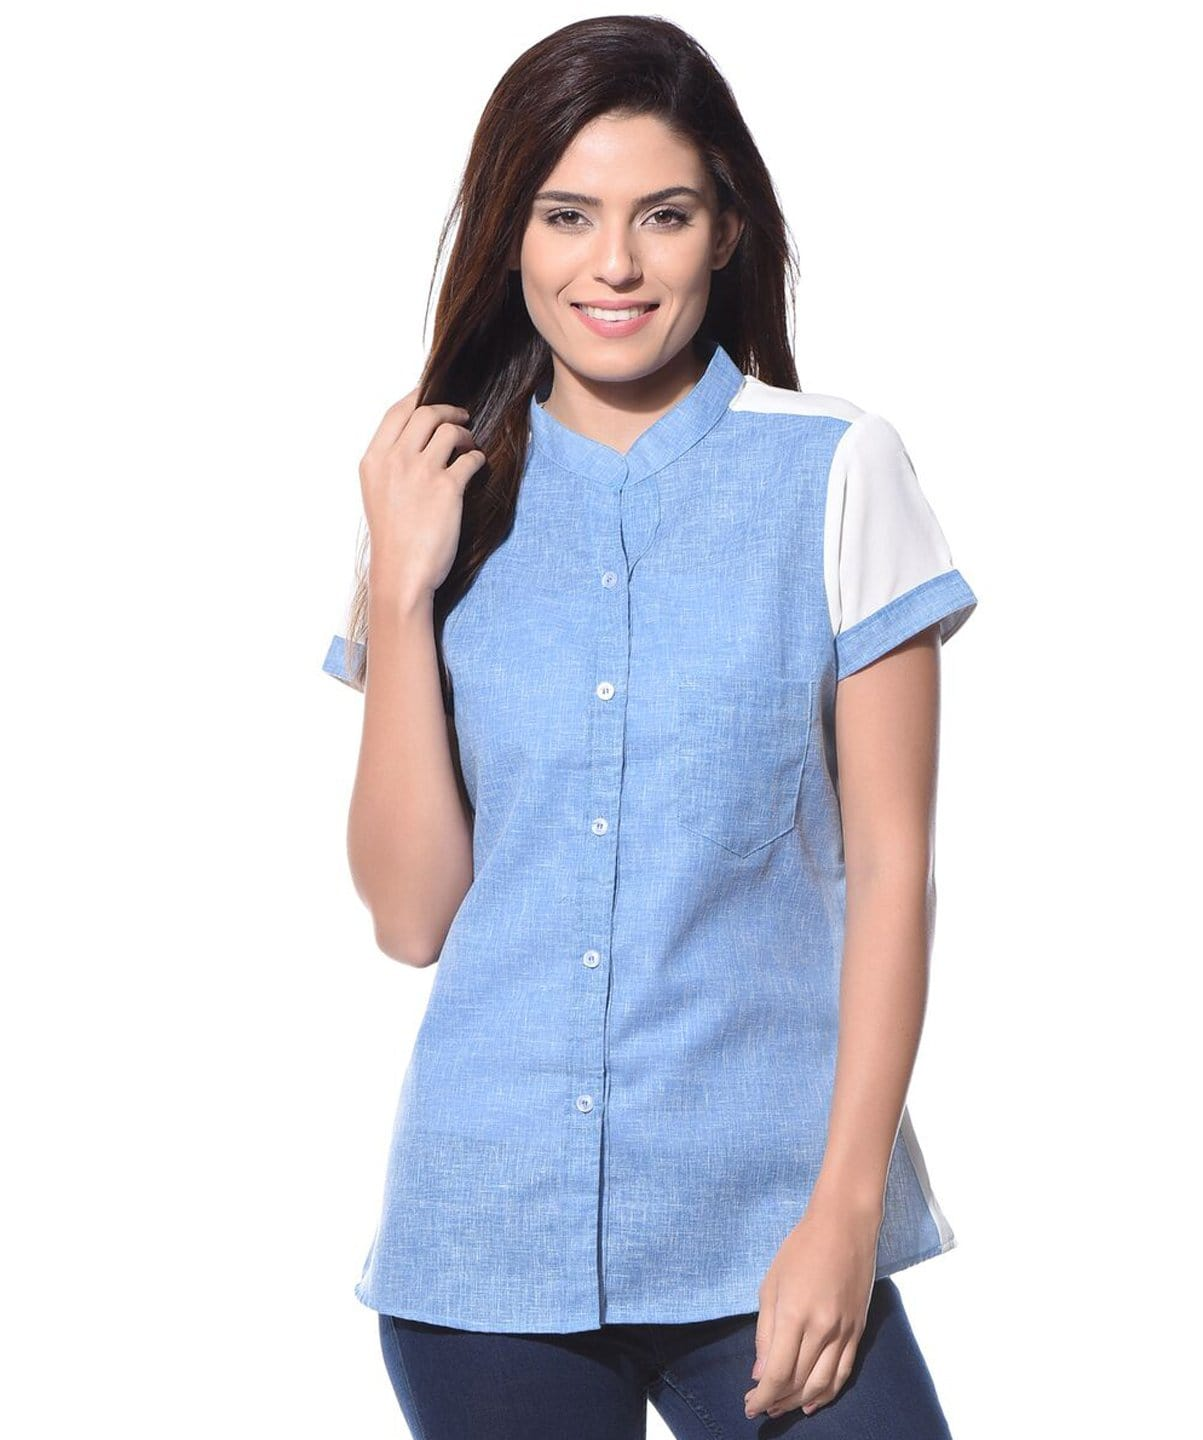 Solid Blue Denim Chambray Georgette Shirt. BUY 1 GET 1